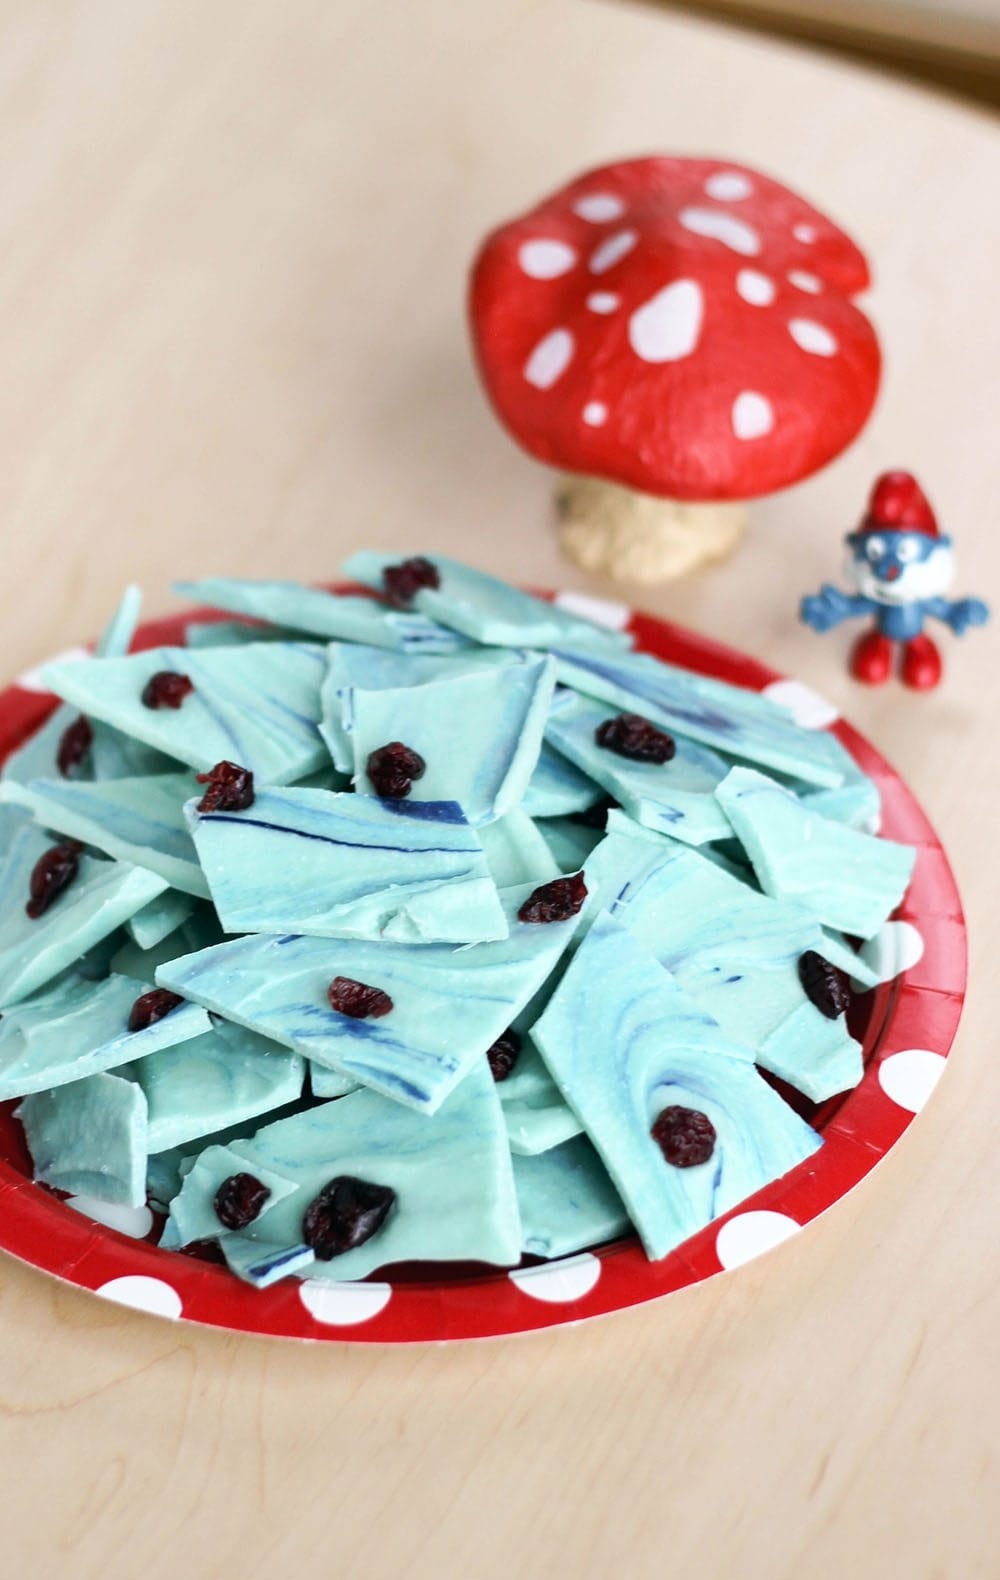 Blue swirled candy bark